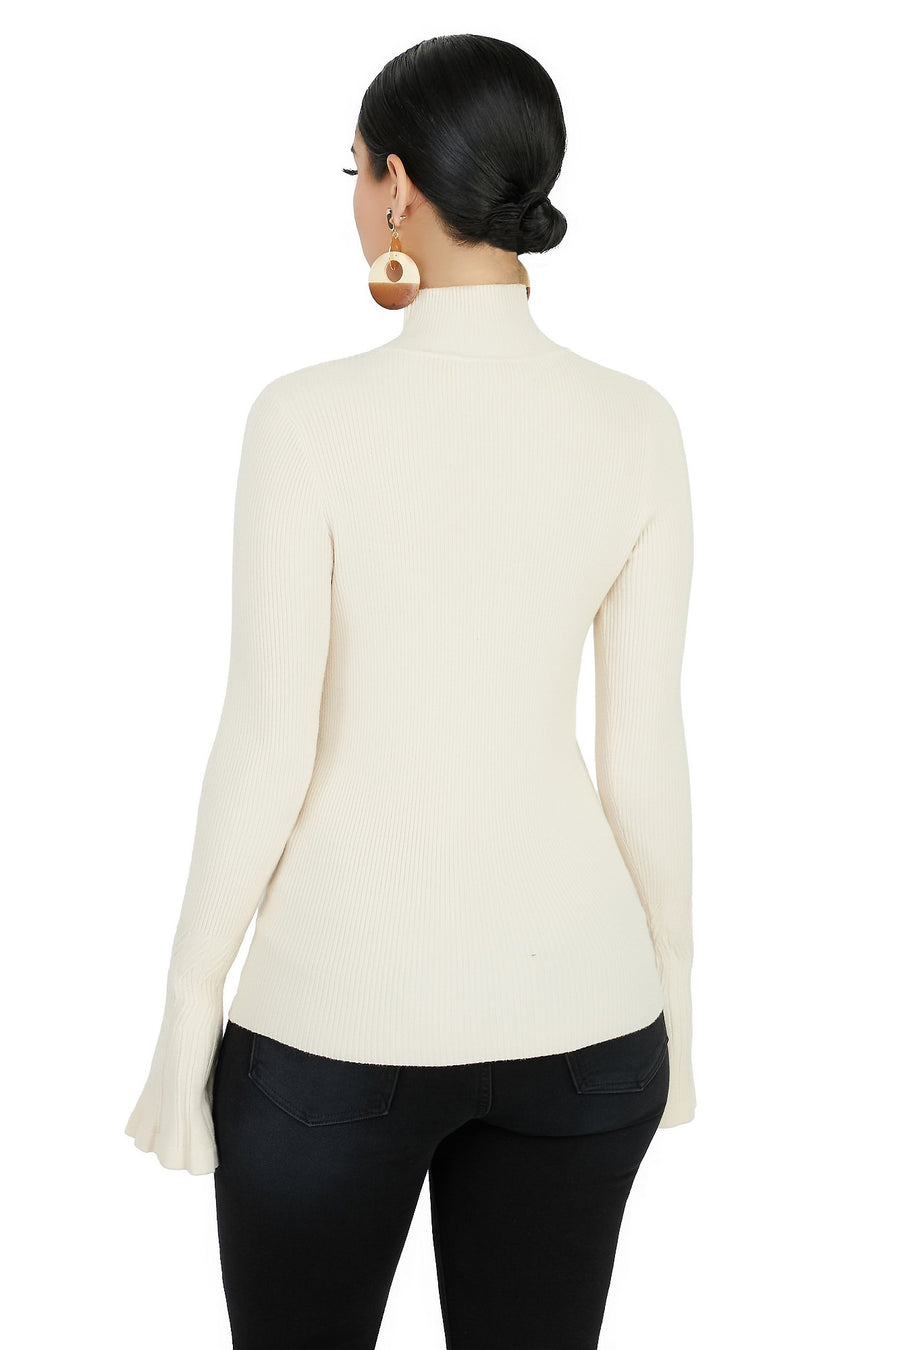 Let Your Flare Down Top - Cream